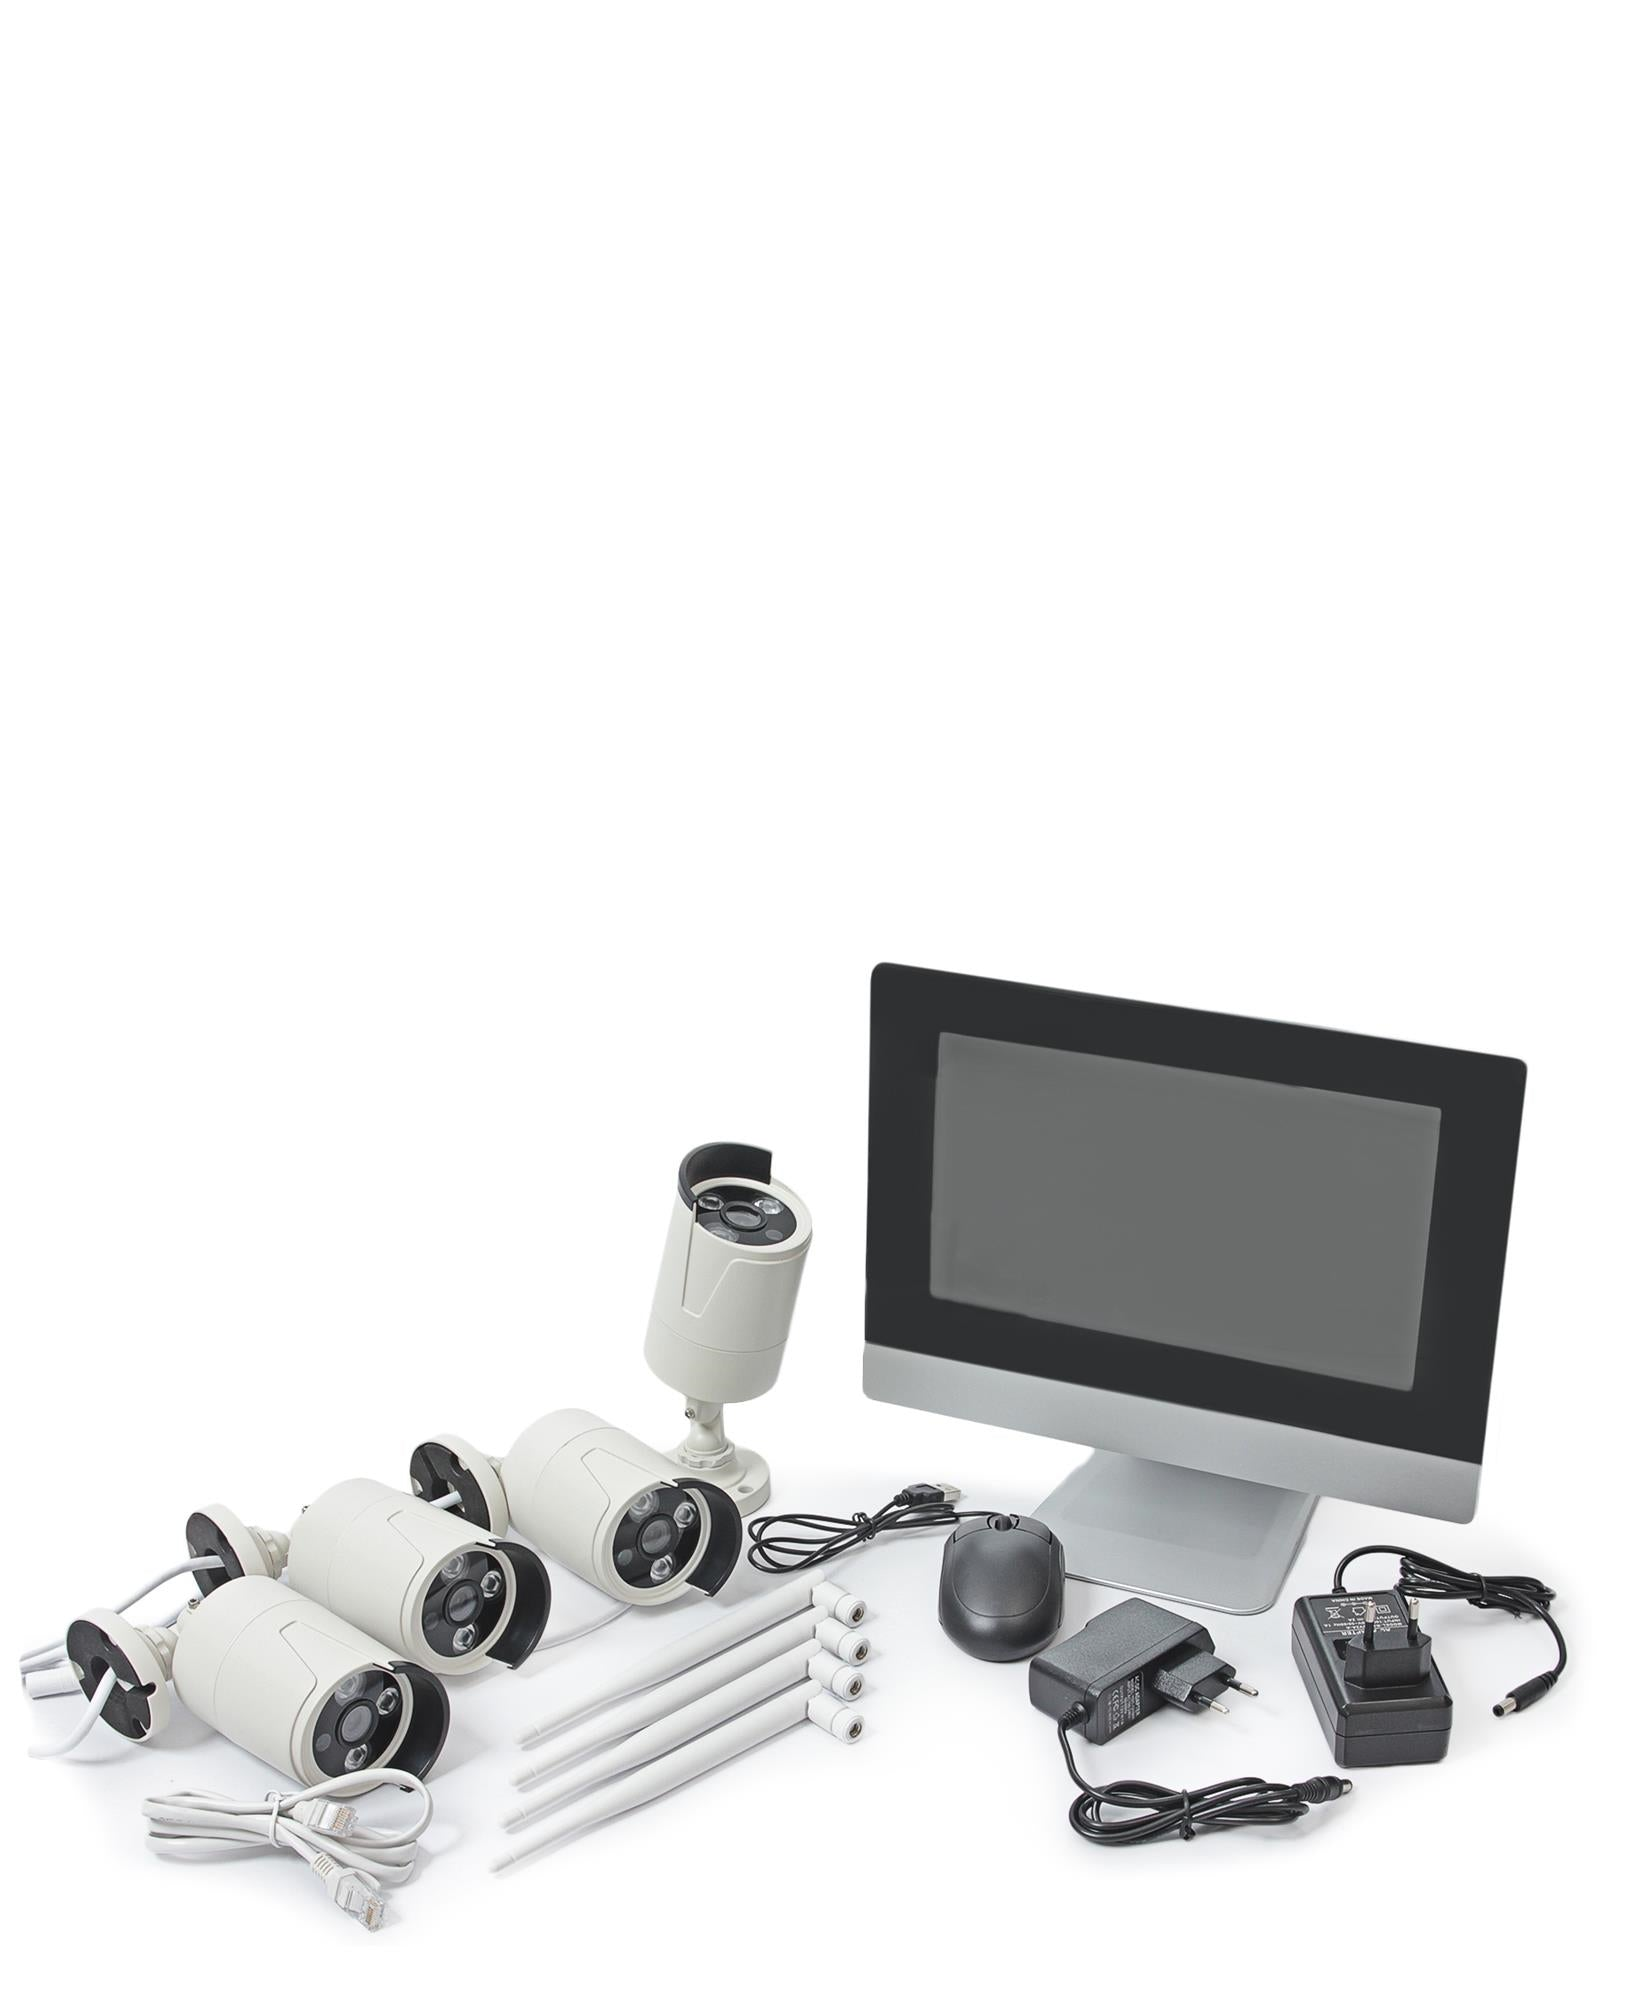 Wireless Surveilance System - White